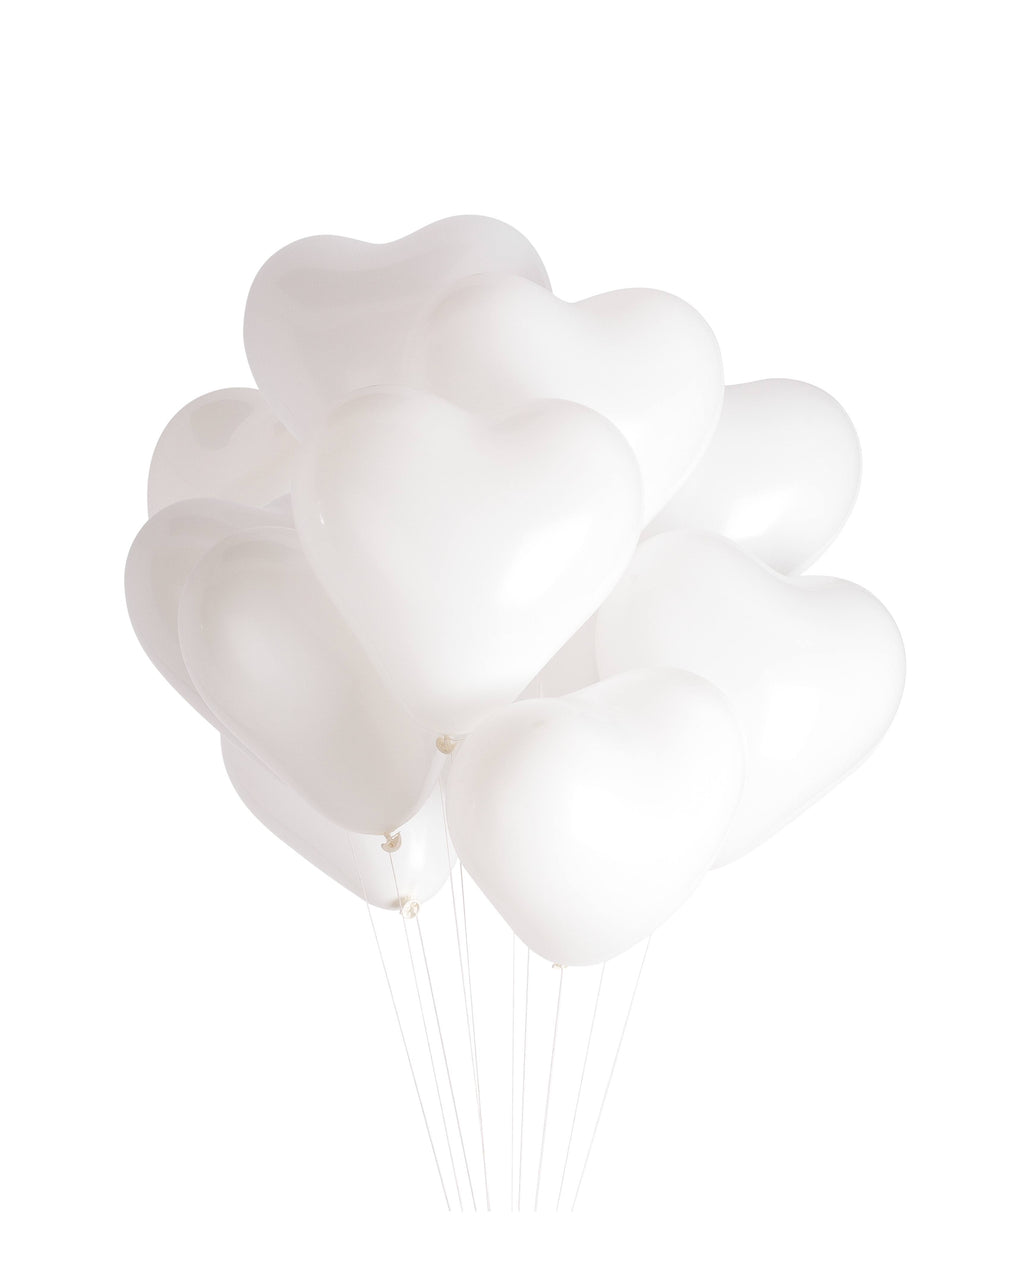 White Heart Balloon Bundle - Revelry Goods